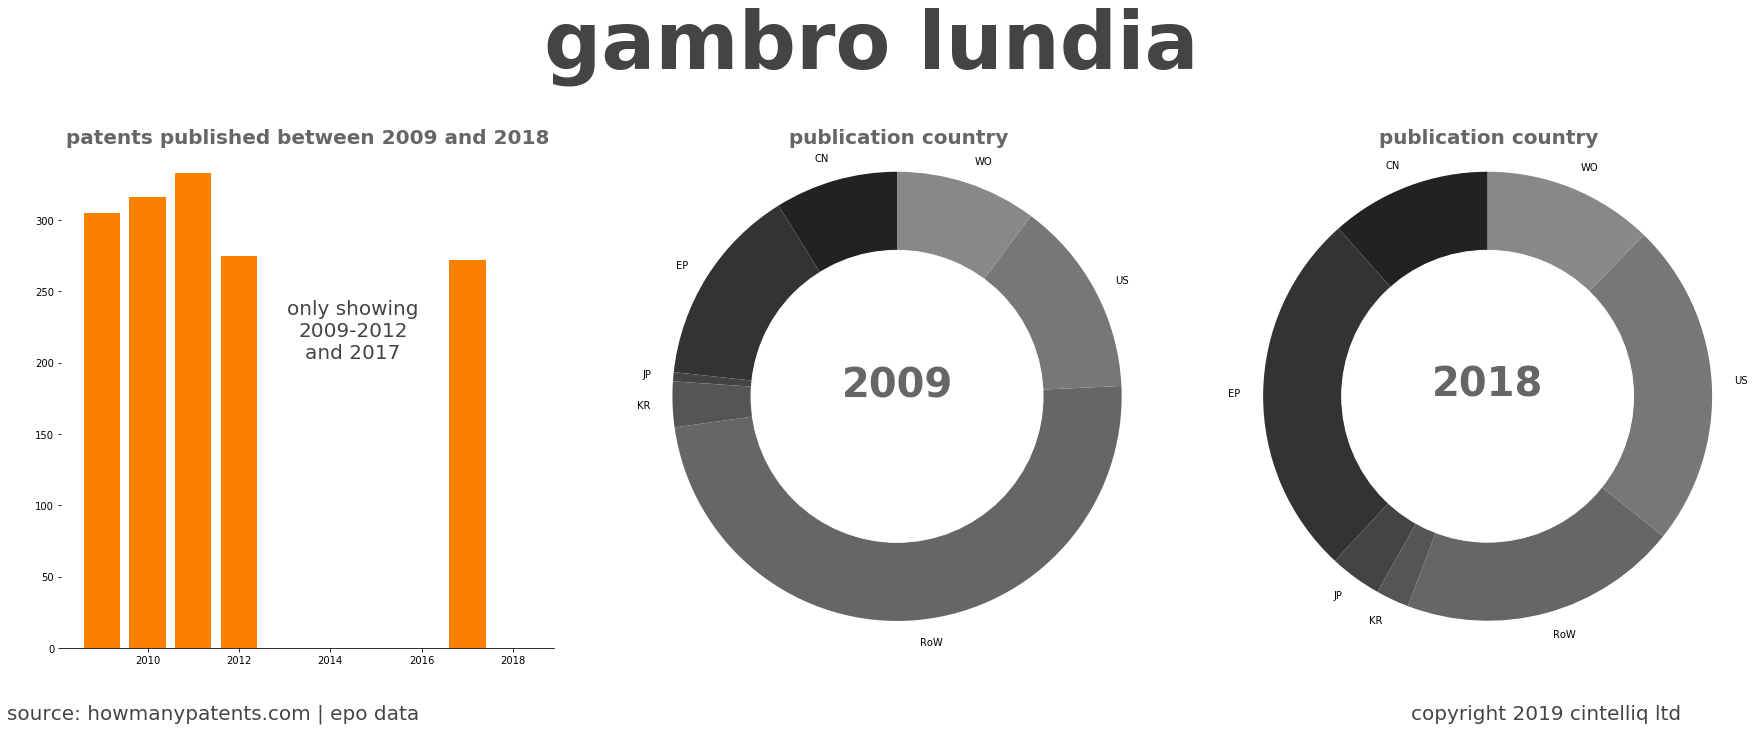 summary of patents for Gambro Lundia